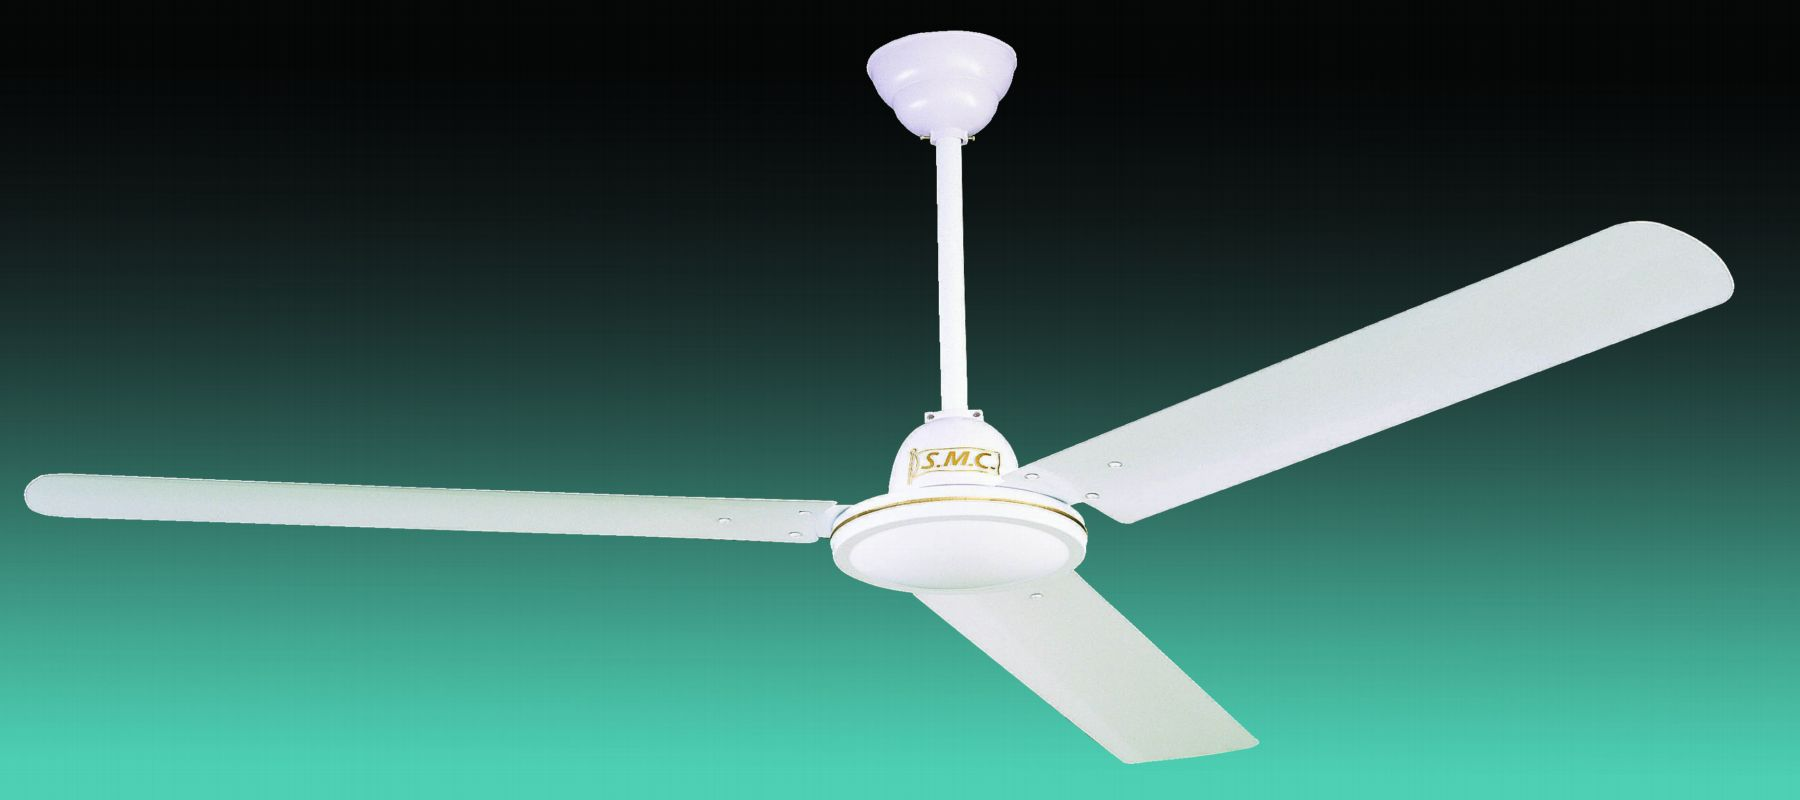 Smc ceiling fan wholesale ceiling fan suppliers alibaba aloadofball Gallery